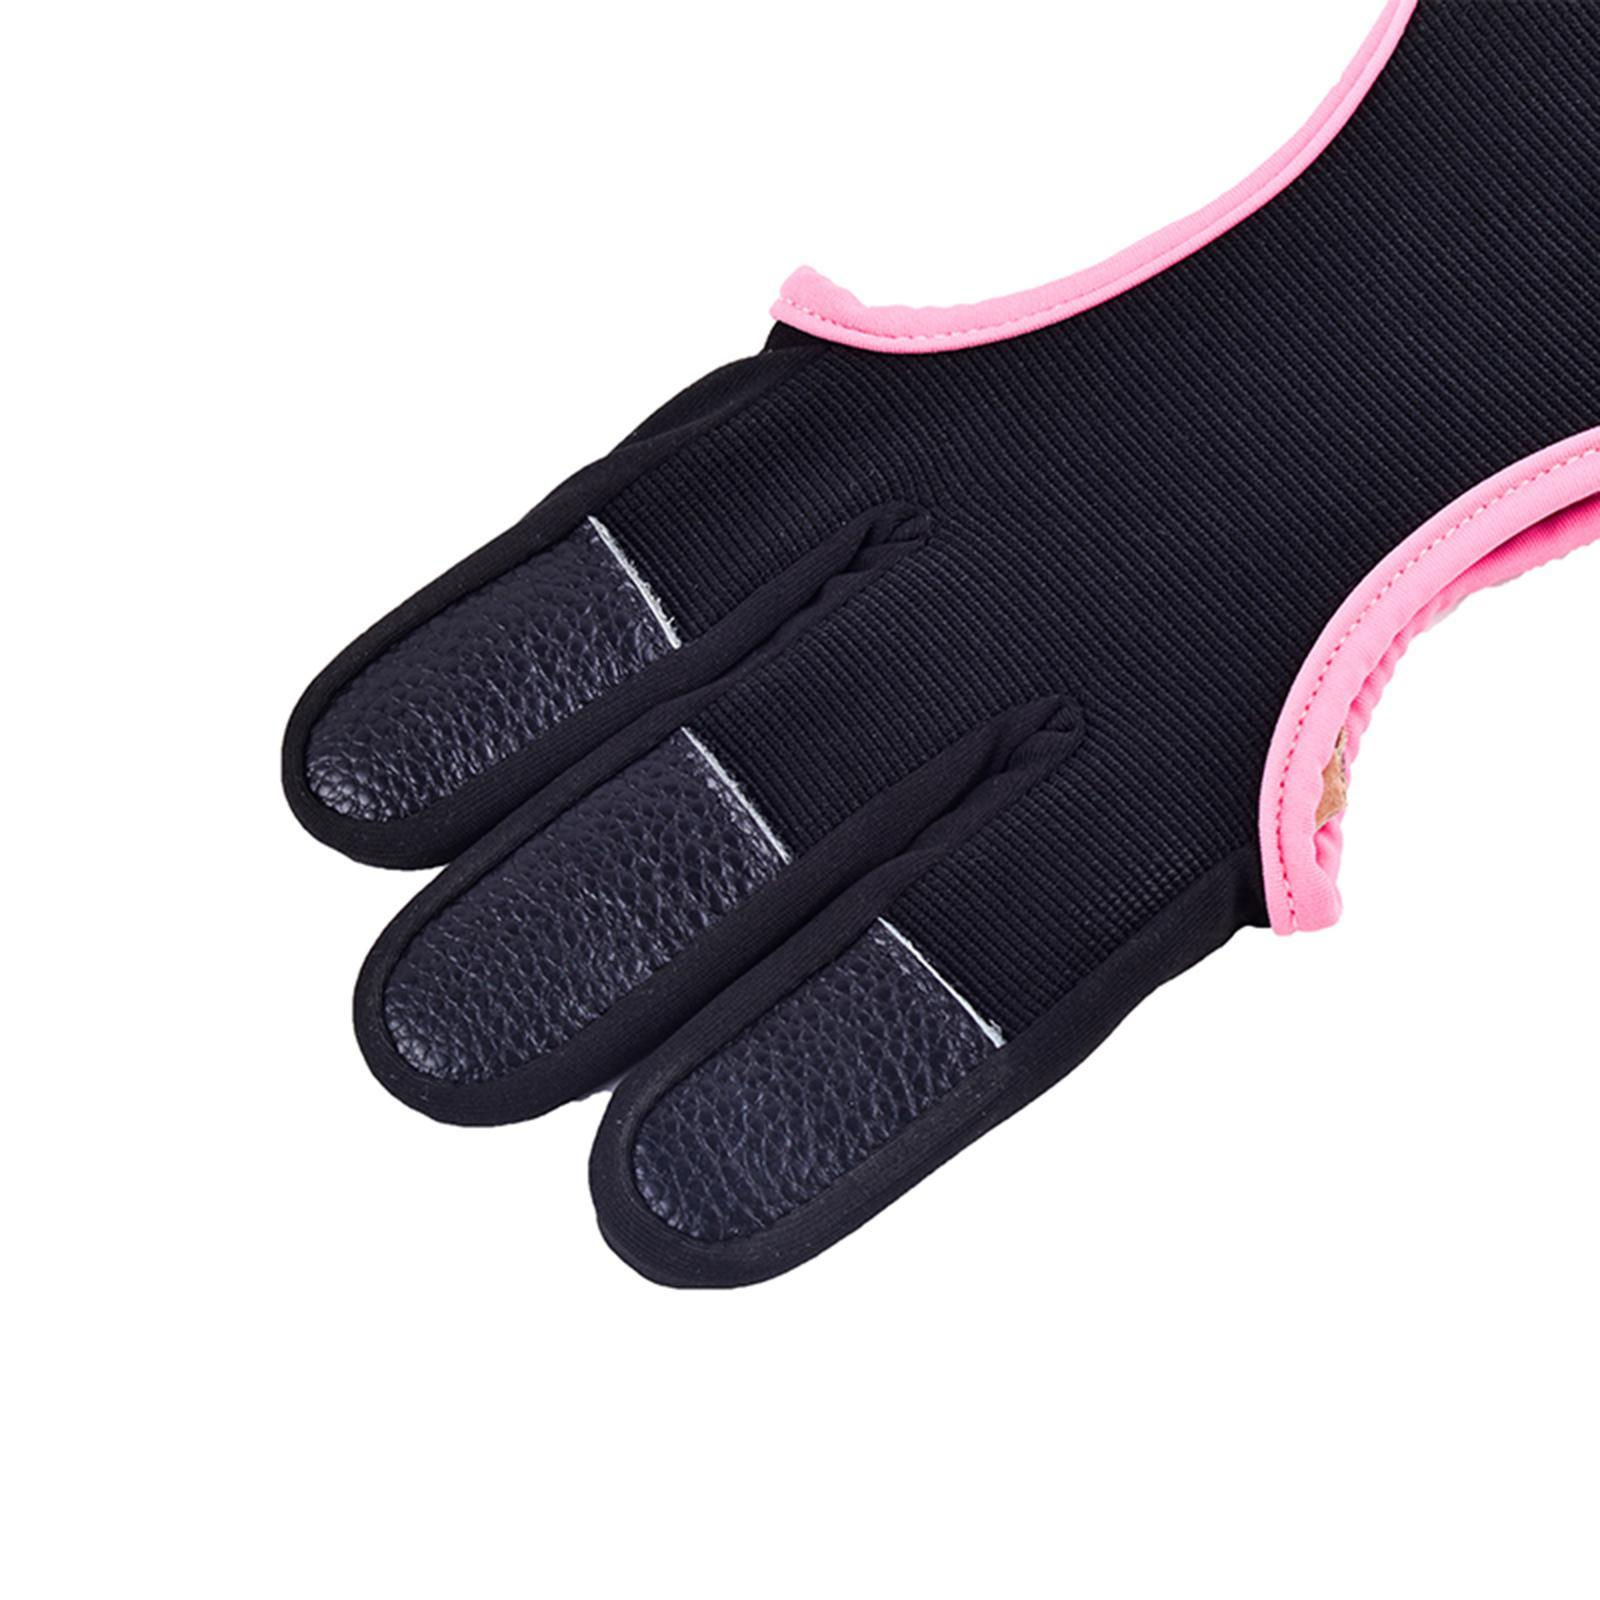 thumbnail 28 - Archery Glove for Recurve & Compound Bow 3 Finger Guard for Women Men Youth